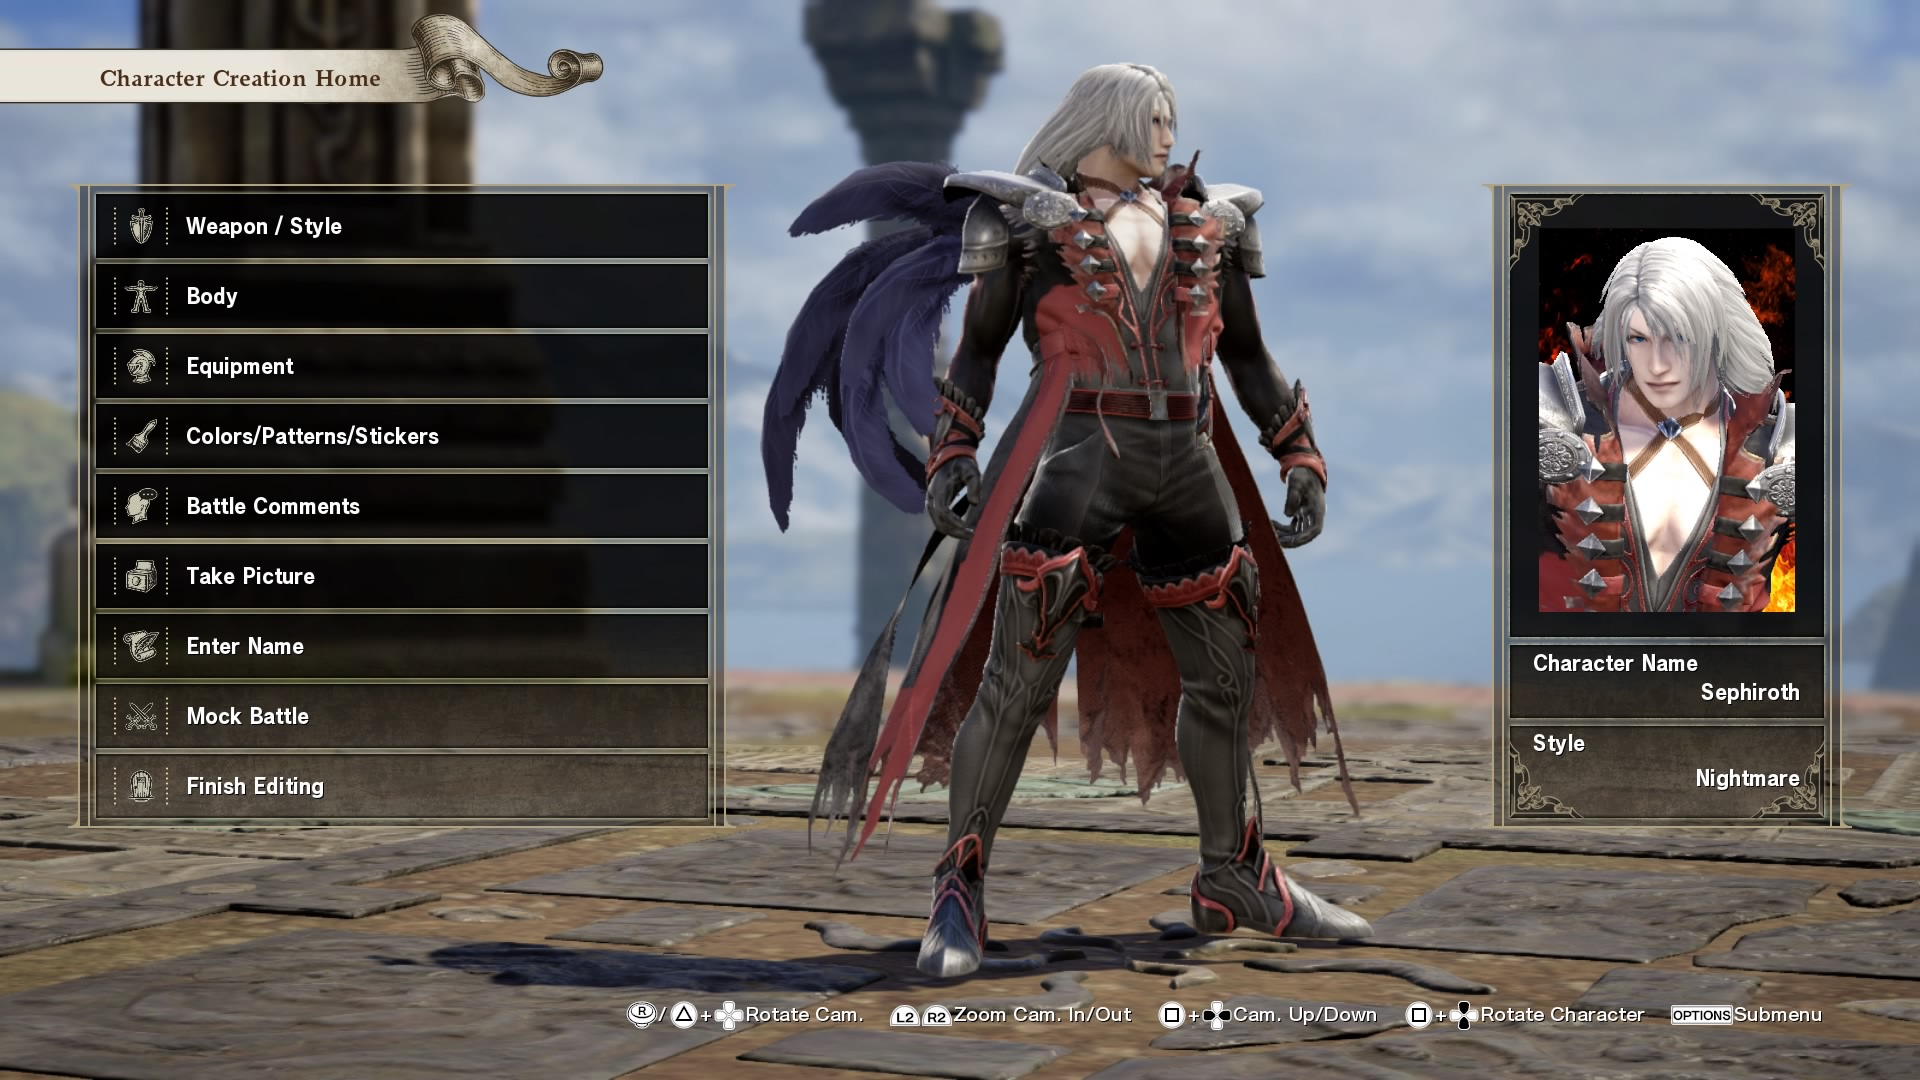 Kingdom Hearts Sephiroth | SoulCalibur VI Custom Characters | Know